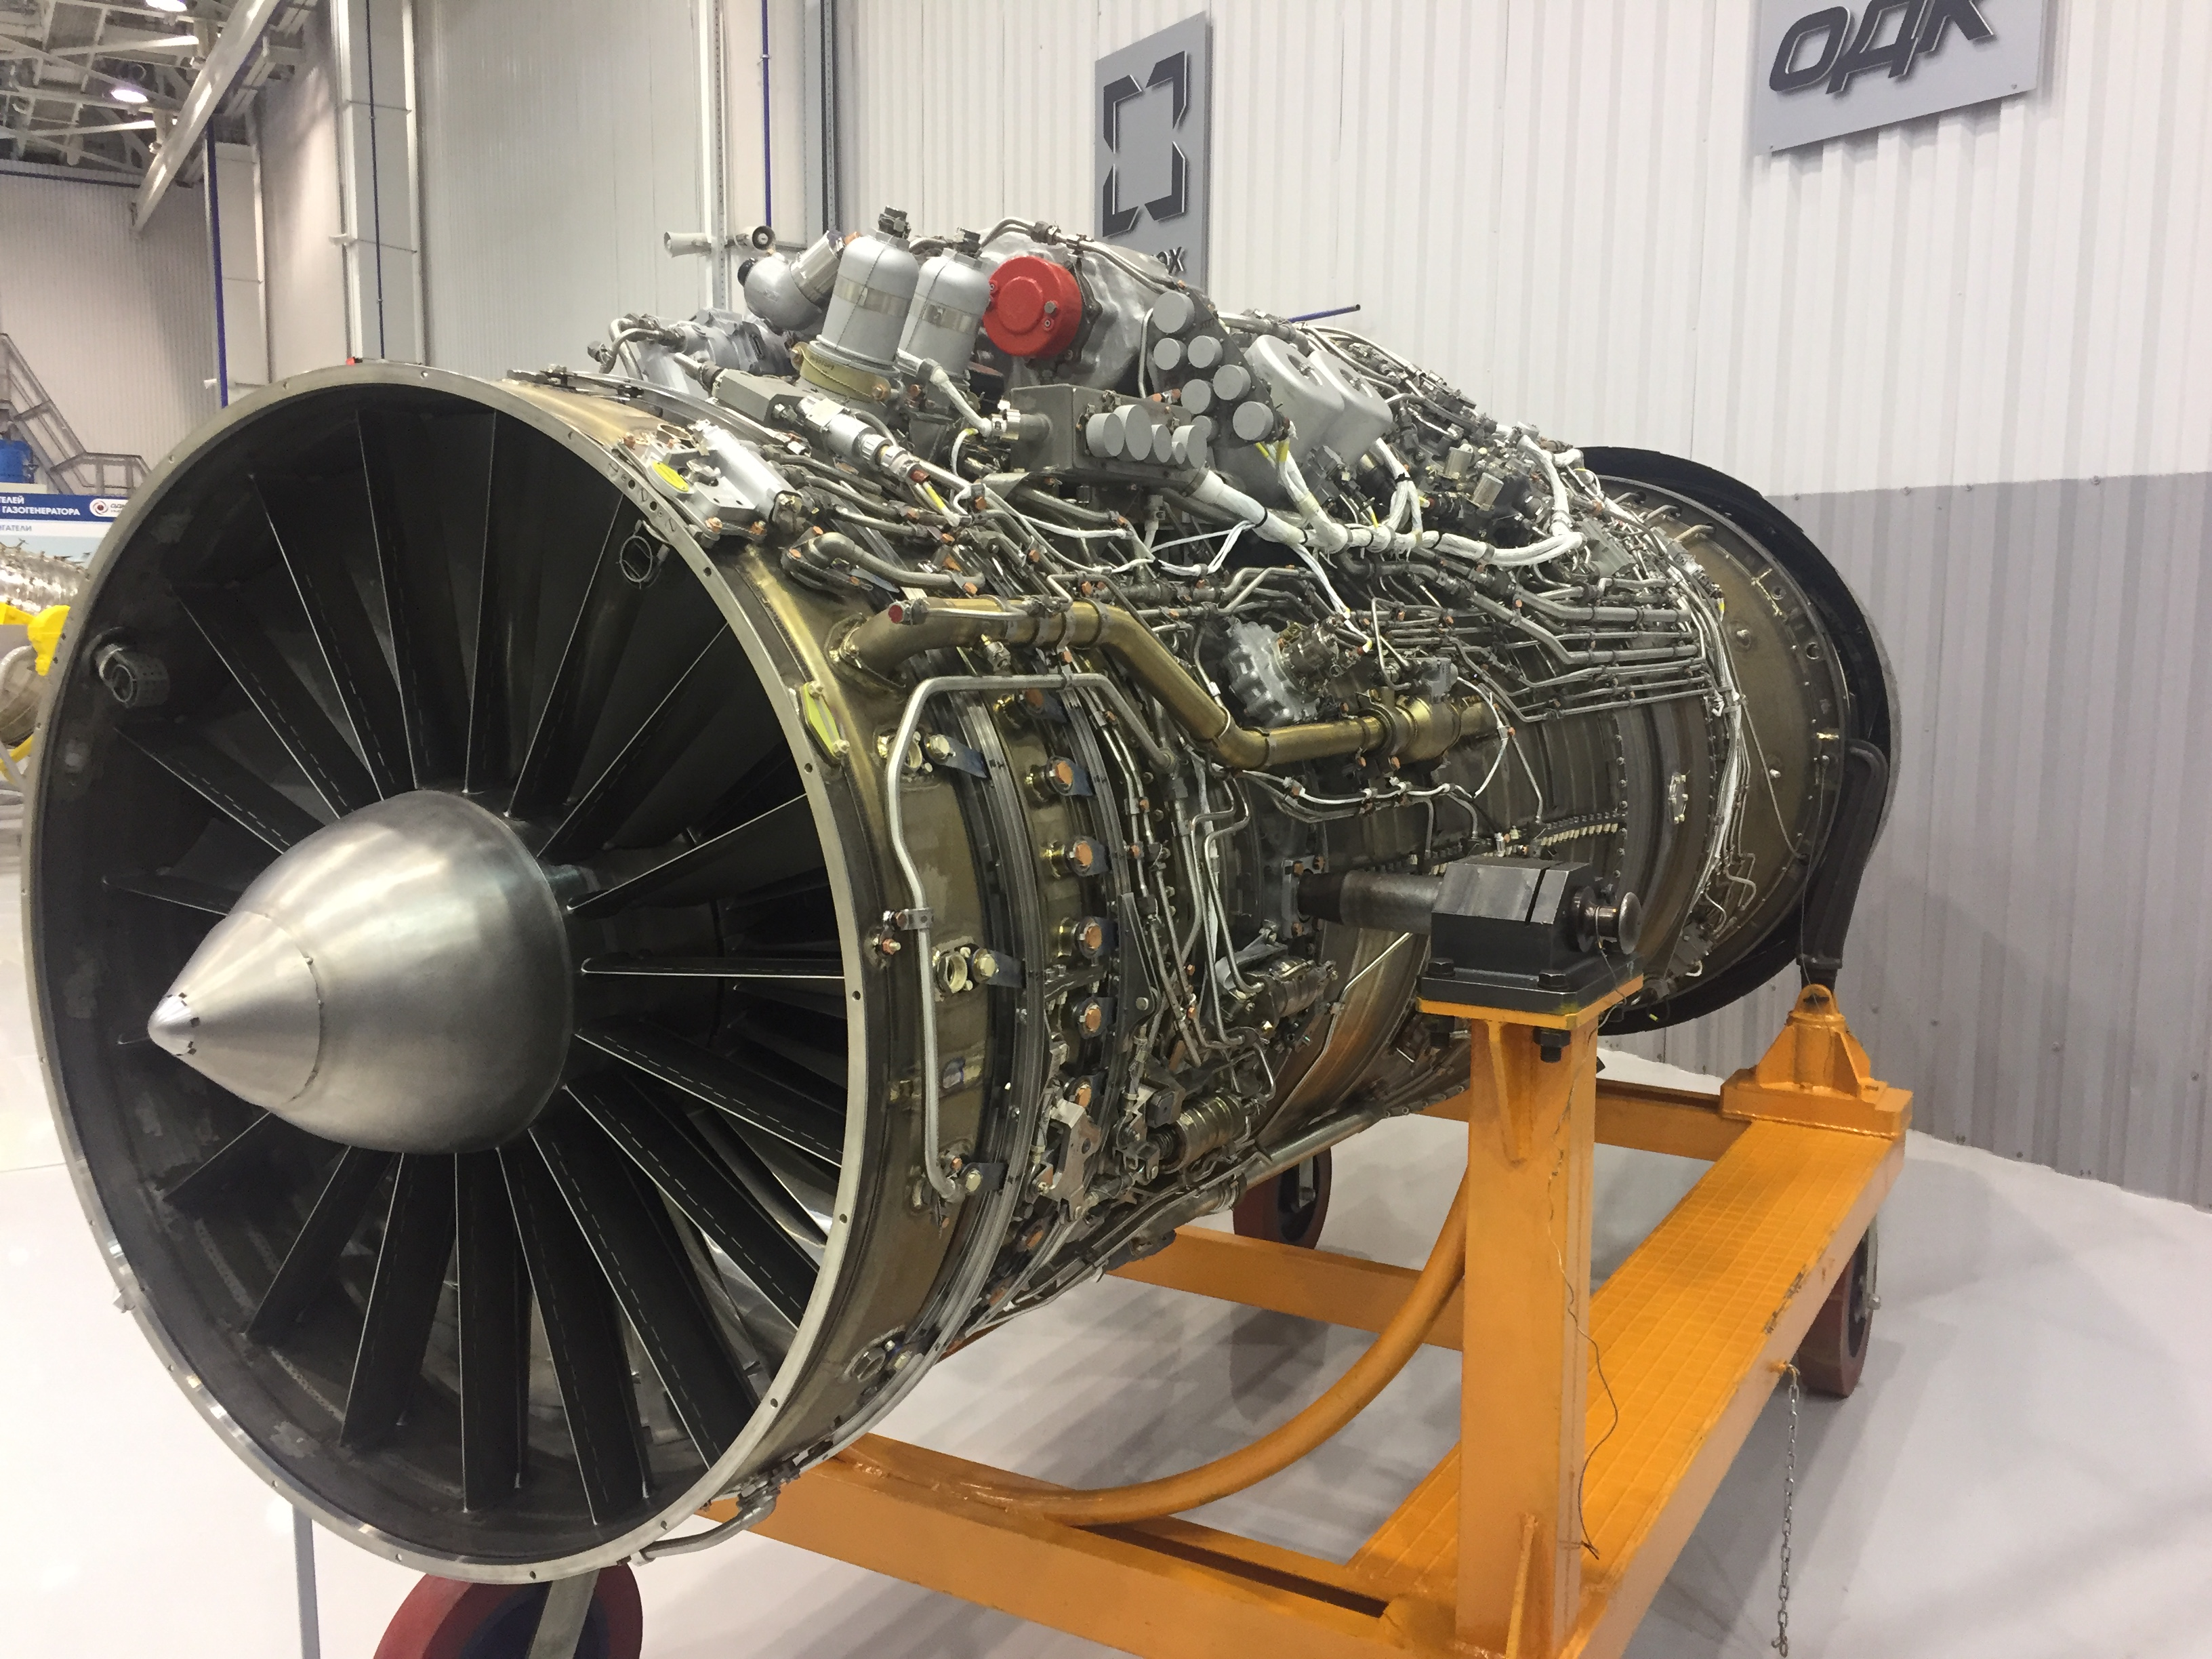 In the museum JSC ODK-Perm engines 95